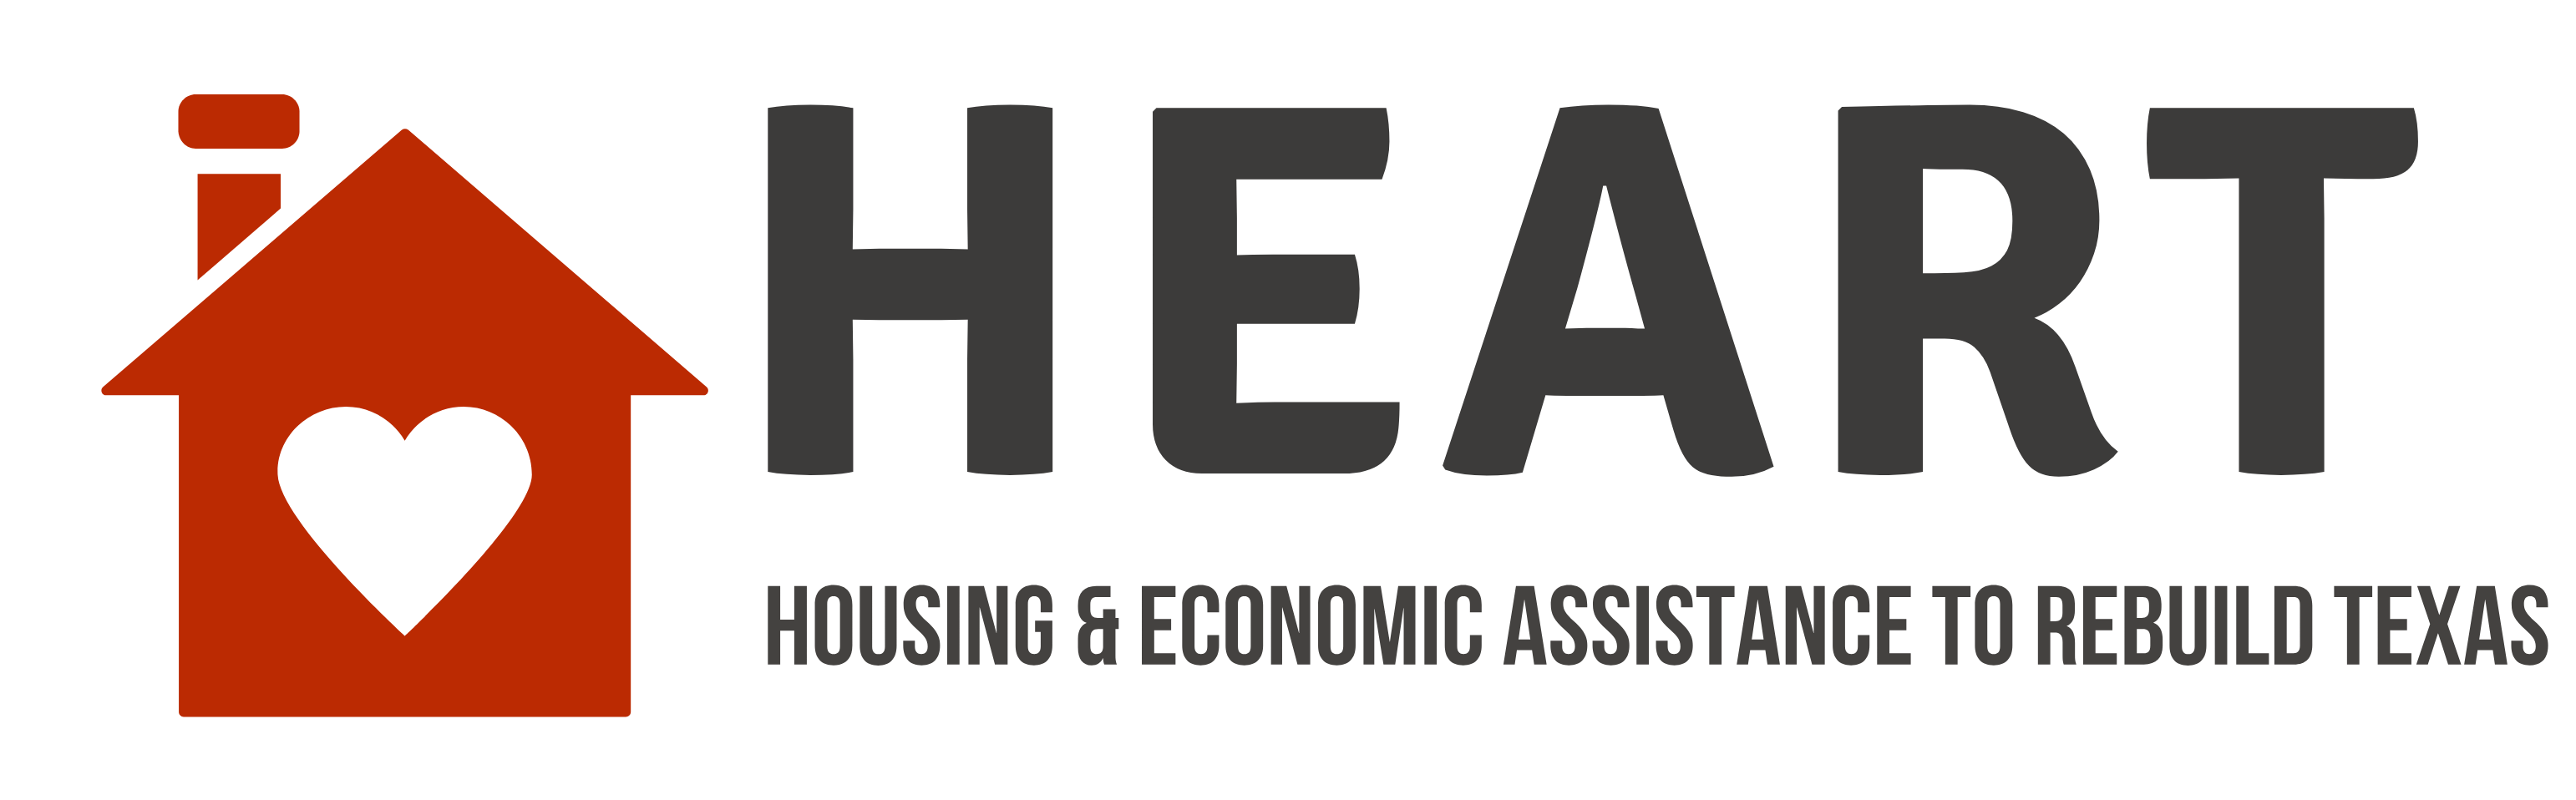 Housing and Economic Assistance to Rebuild Texas (HEART